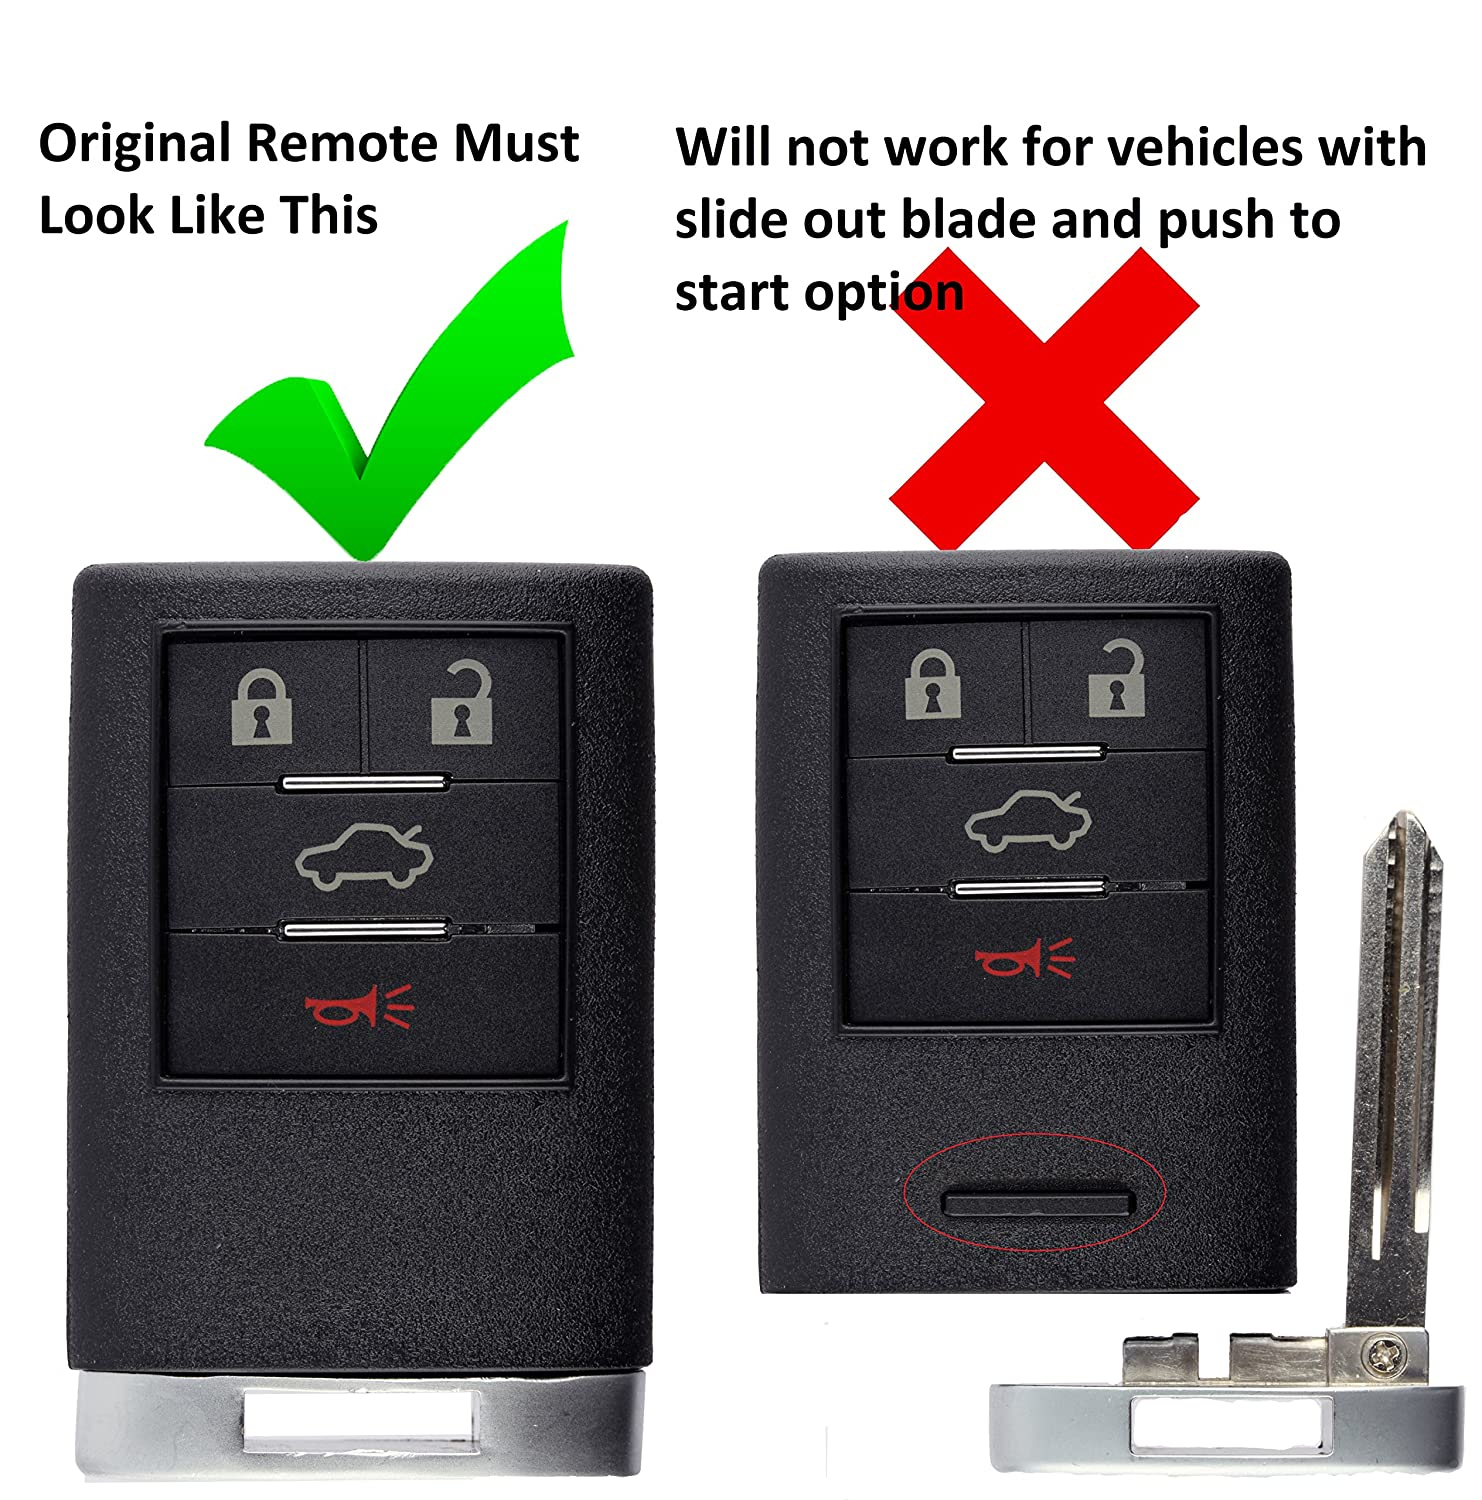 KeylessOption Keyless Entry Remote Control Car Key Fob Replacement for M3N5WY8109 Pack of 2